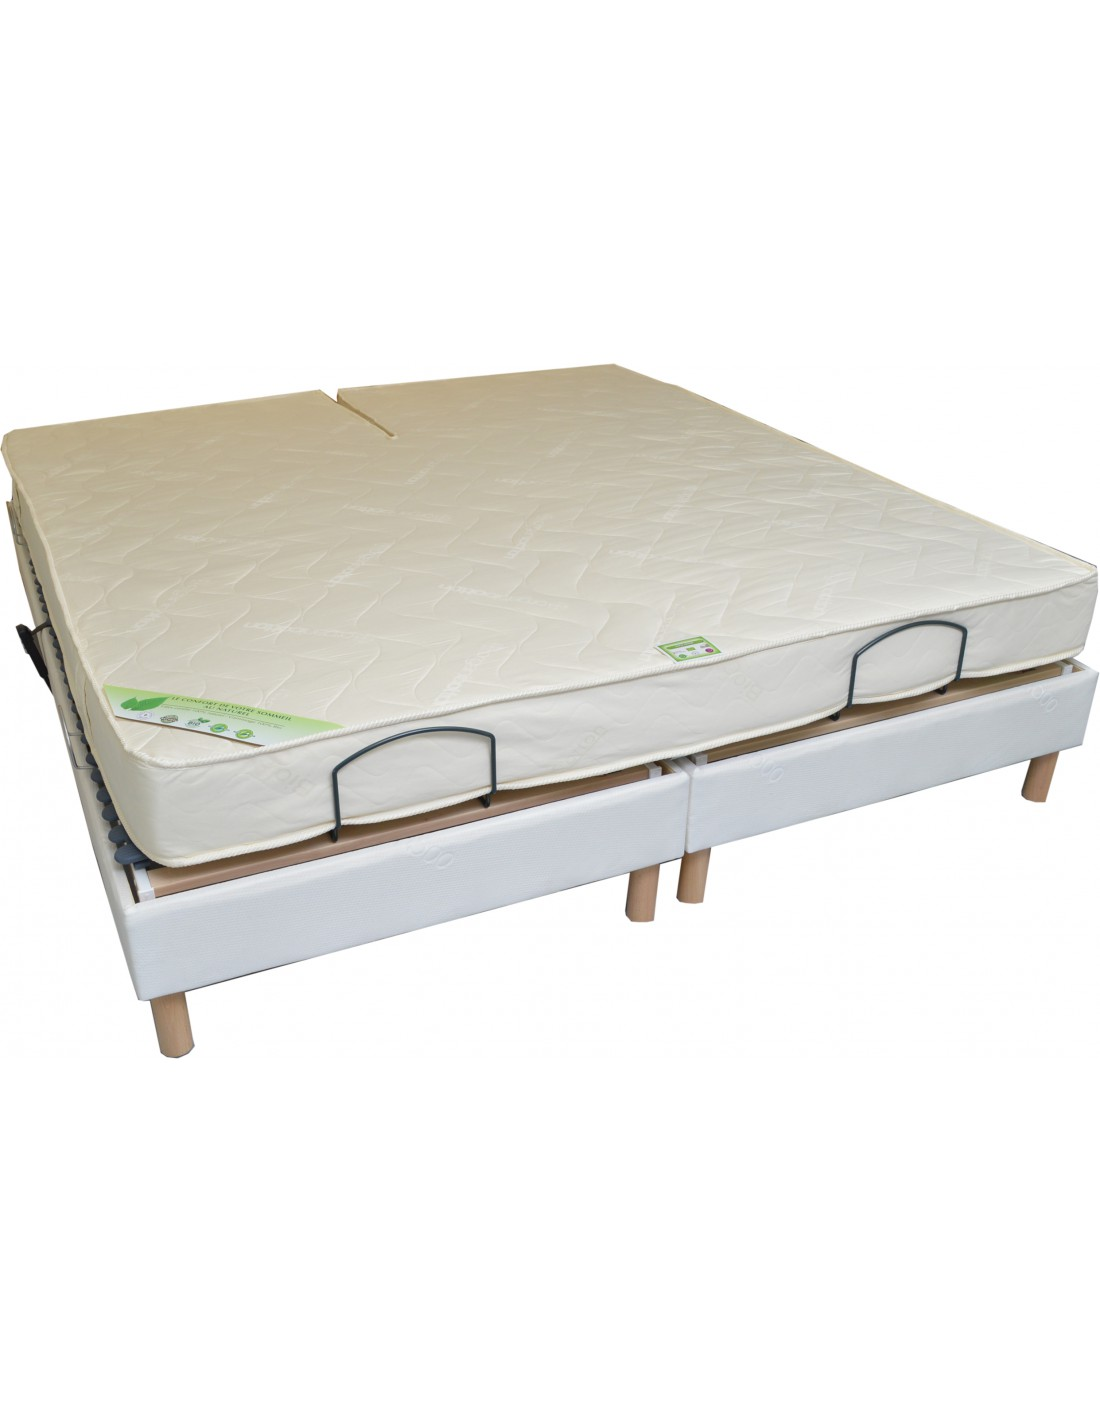 matelas latex 160x190 maison design. Black Bedroom Furniture Sets. Home Design Ideas